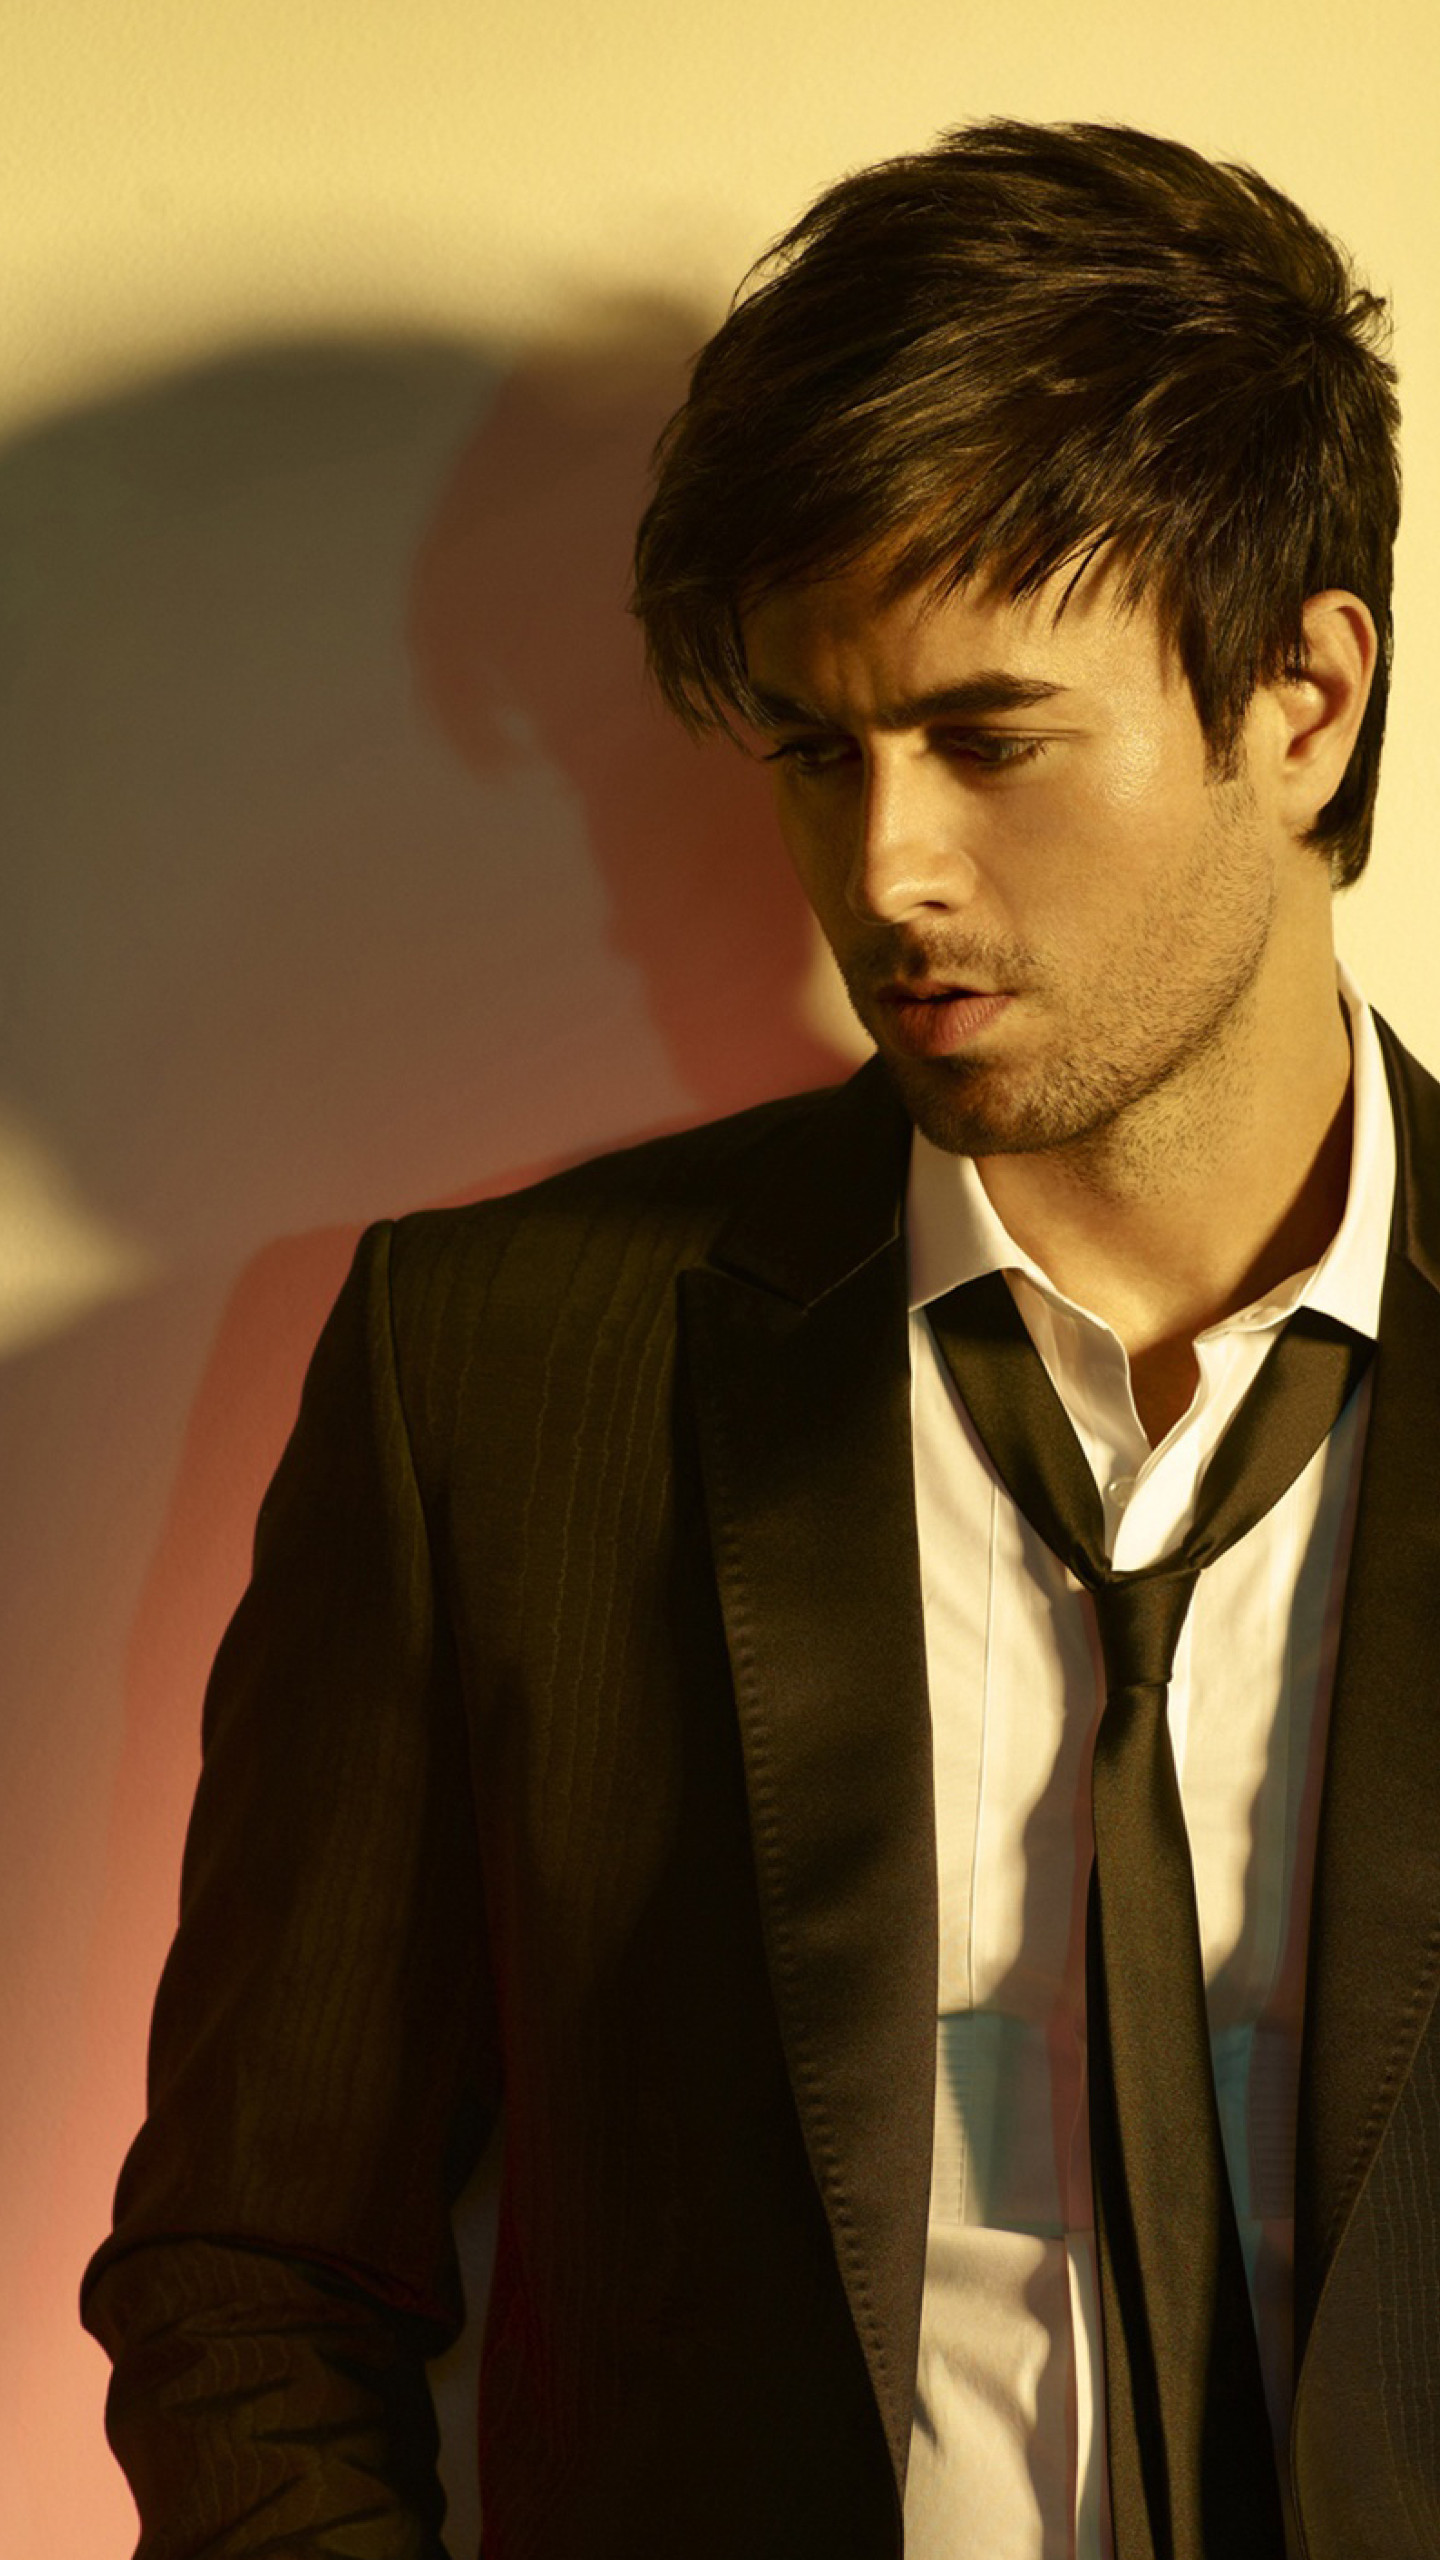 Fall Hd Wallpaper Iphone Enrique Iglesias Wallpapers 66 Images